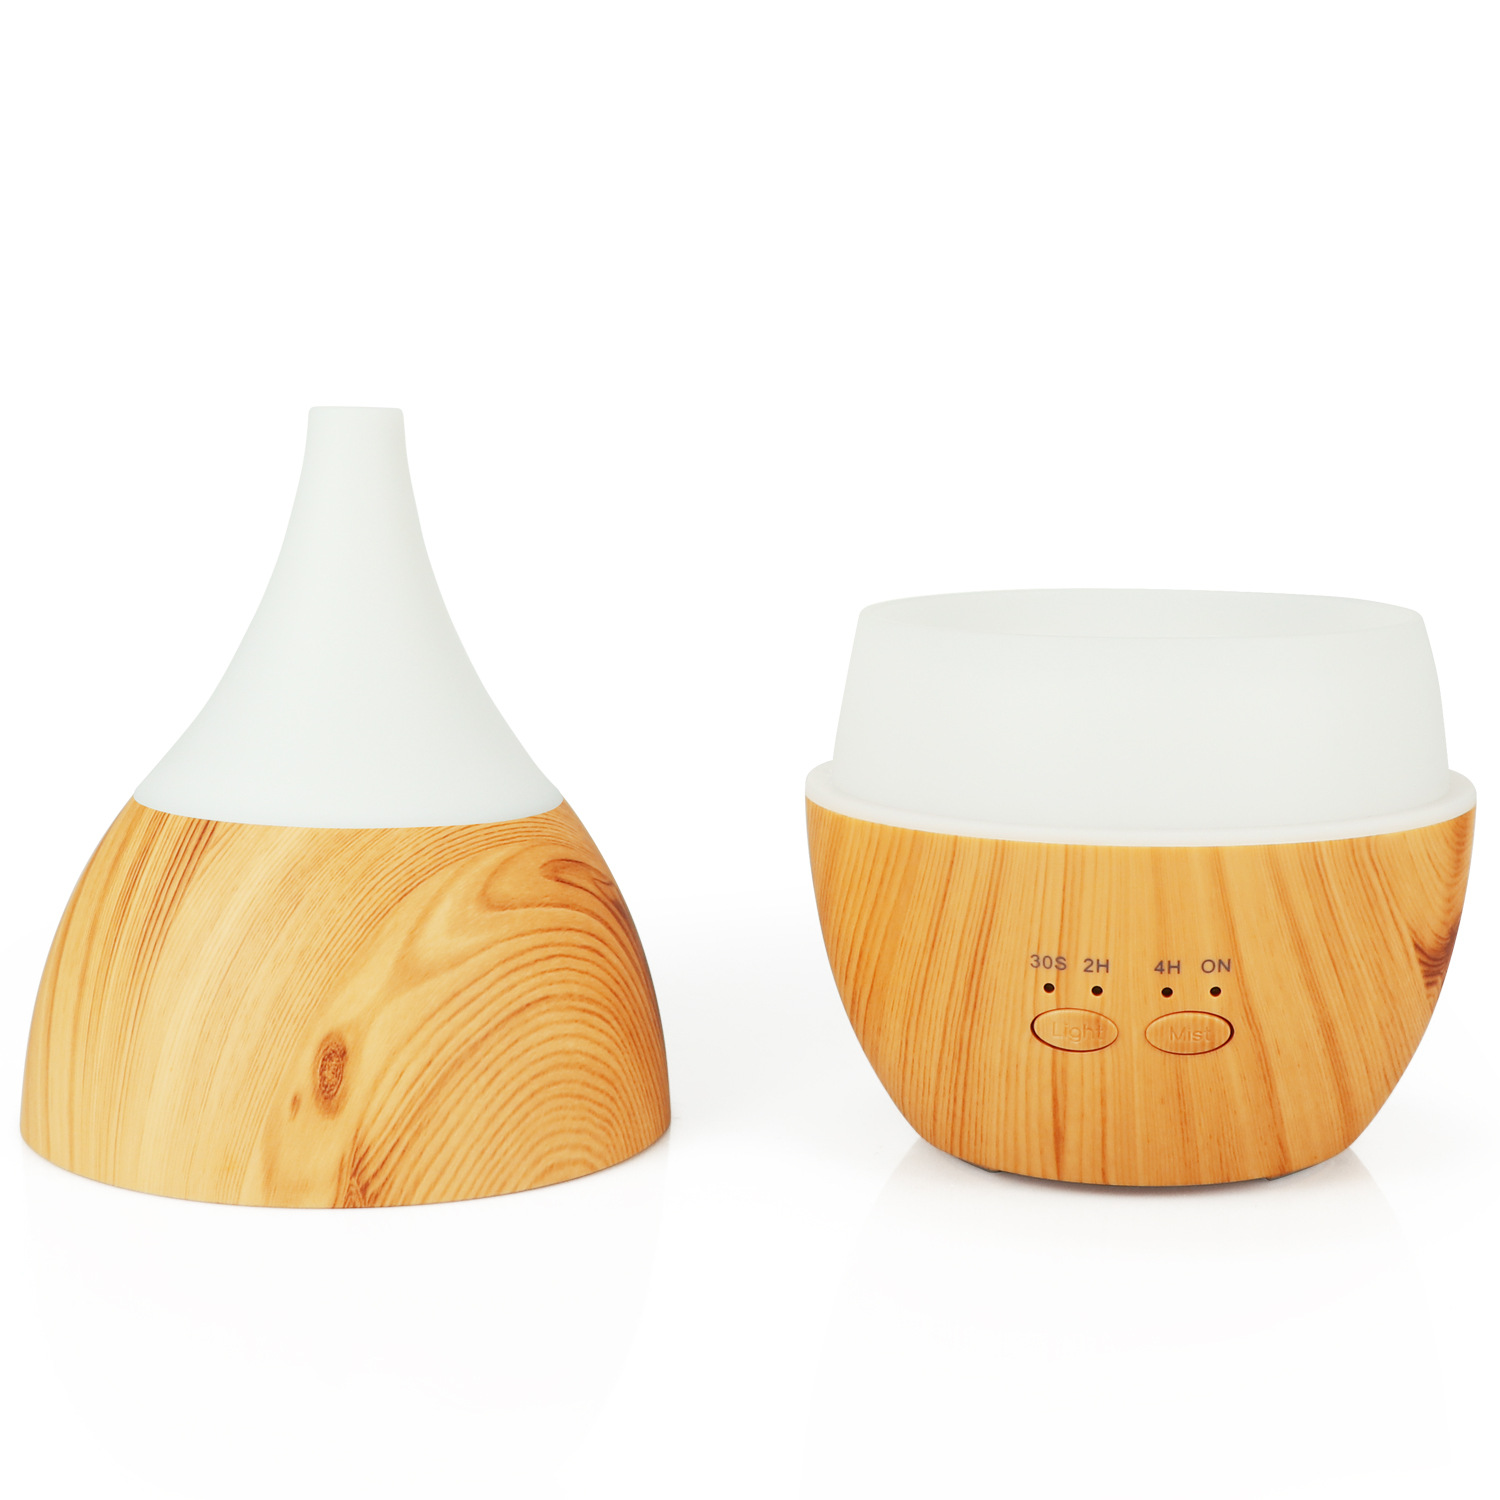 USB Ultrasonic Humidifier 300ml Aroma Diffuser Essential Oil Diffuser Aromatherapy mist maker with 7 color LED Light Wood grain in Smart Accessories from Consumer Electronics